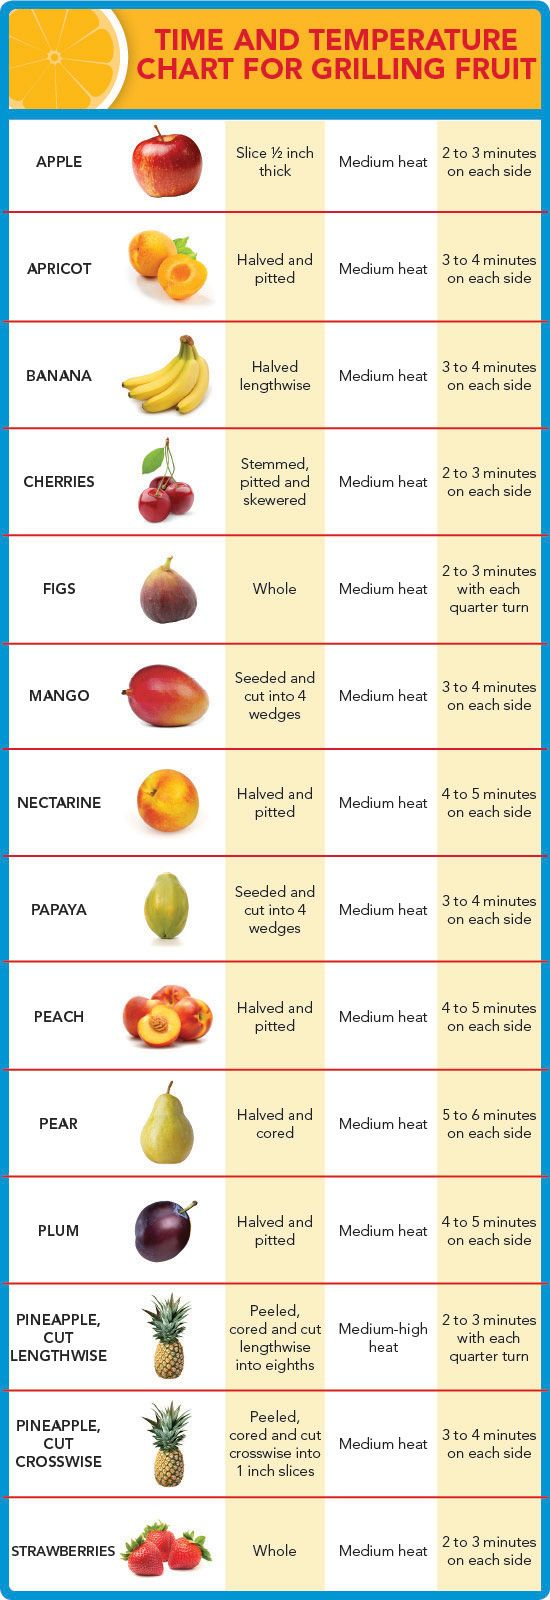 Grilling Fruit - Time & Temperature Chart